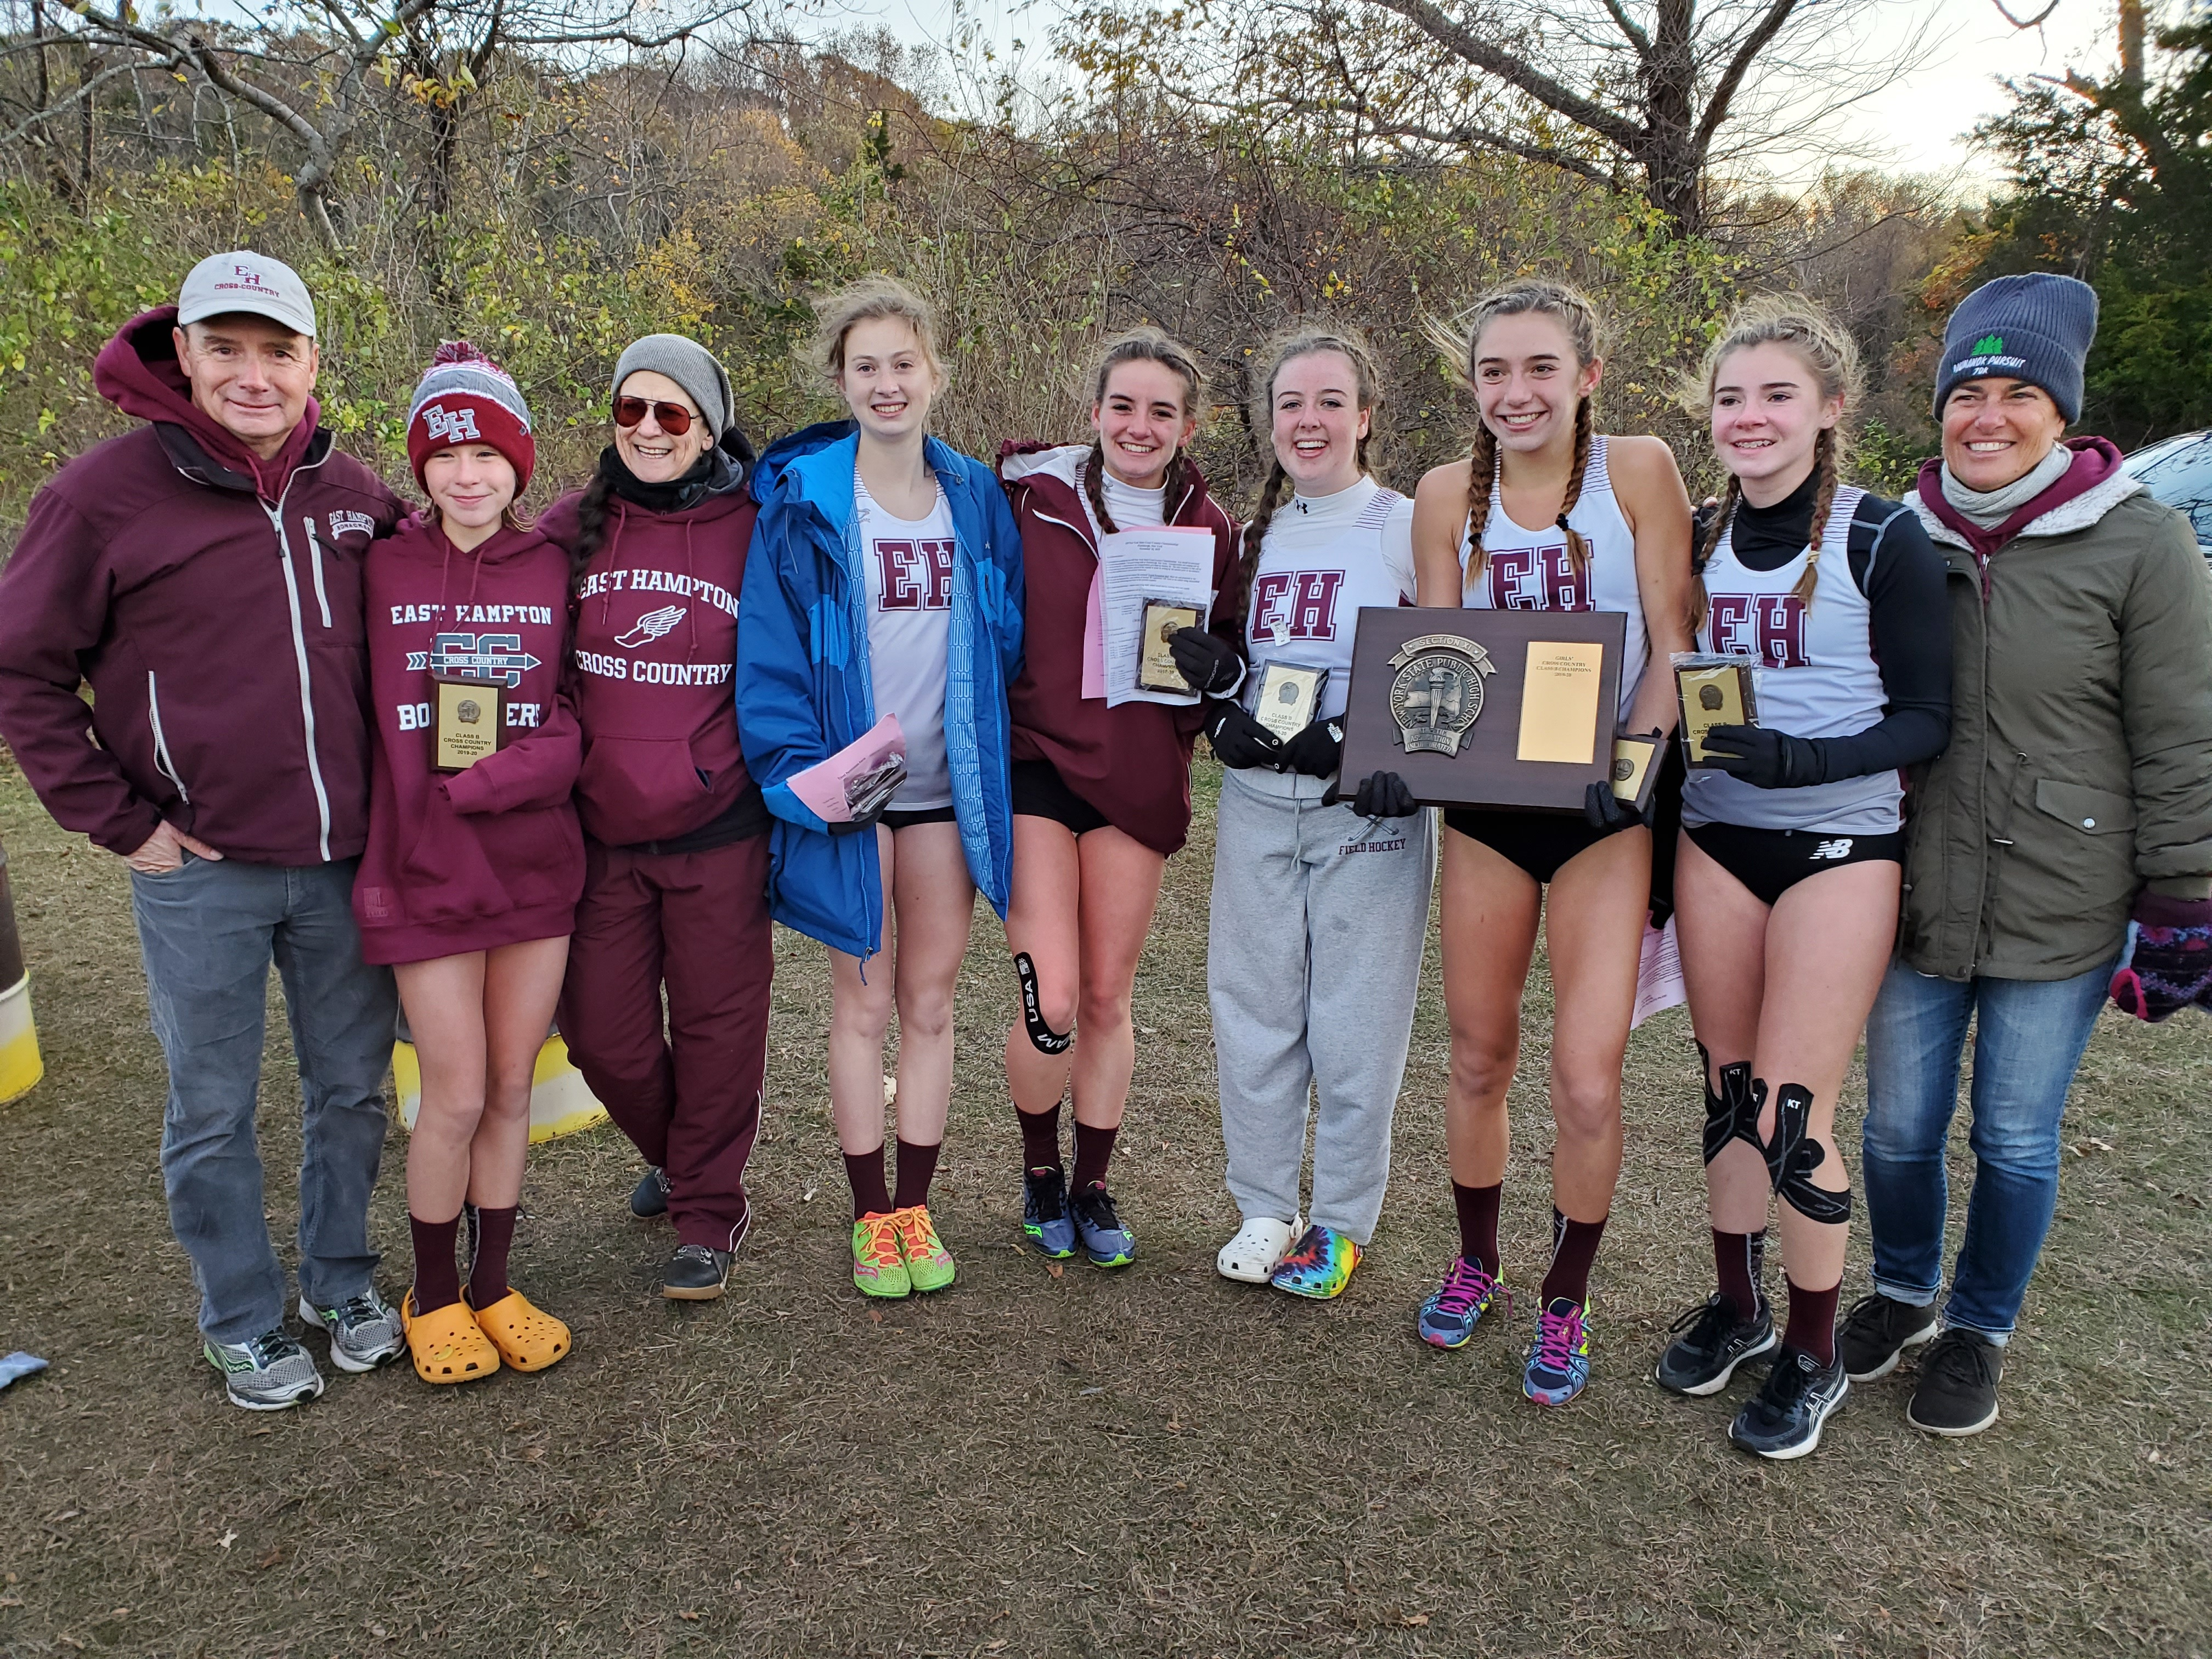 The East Hampton girls cross country team won its first ever county title on Friday.